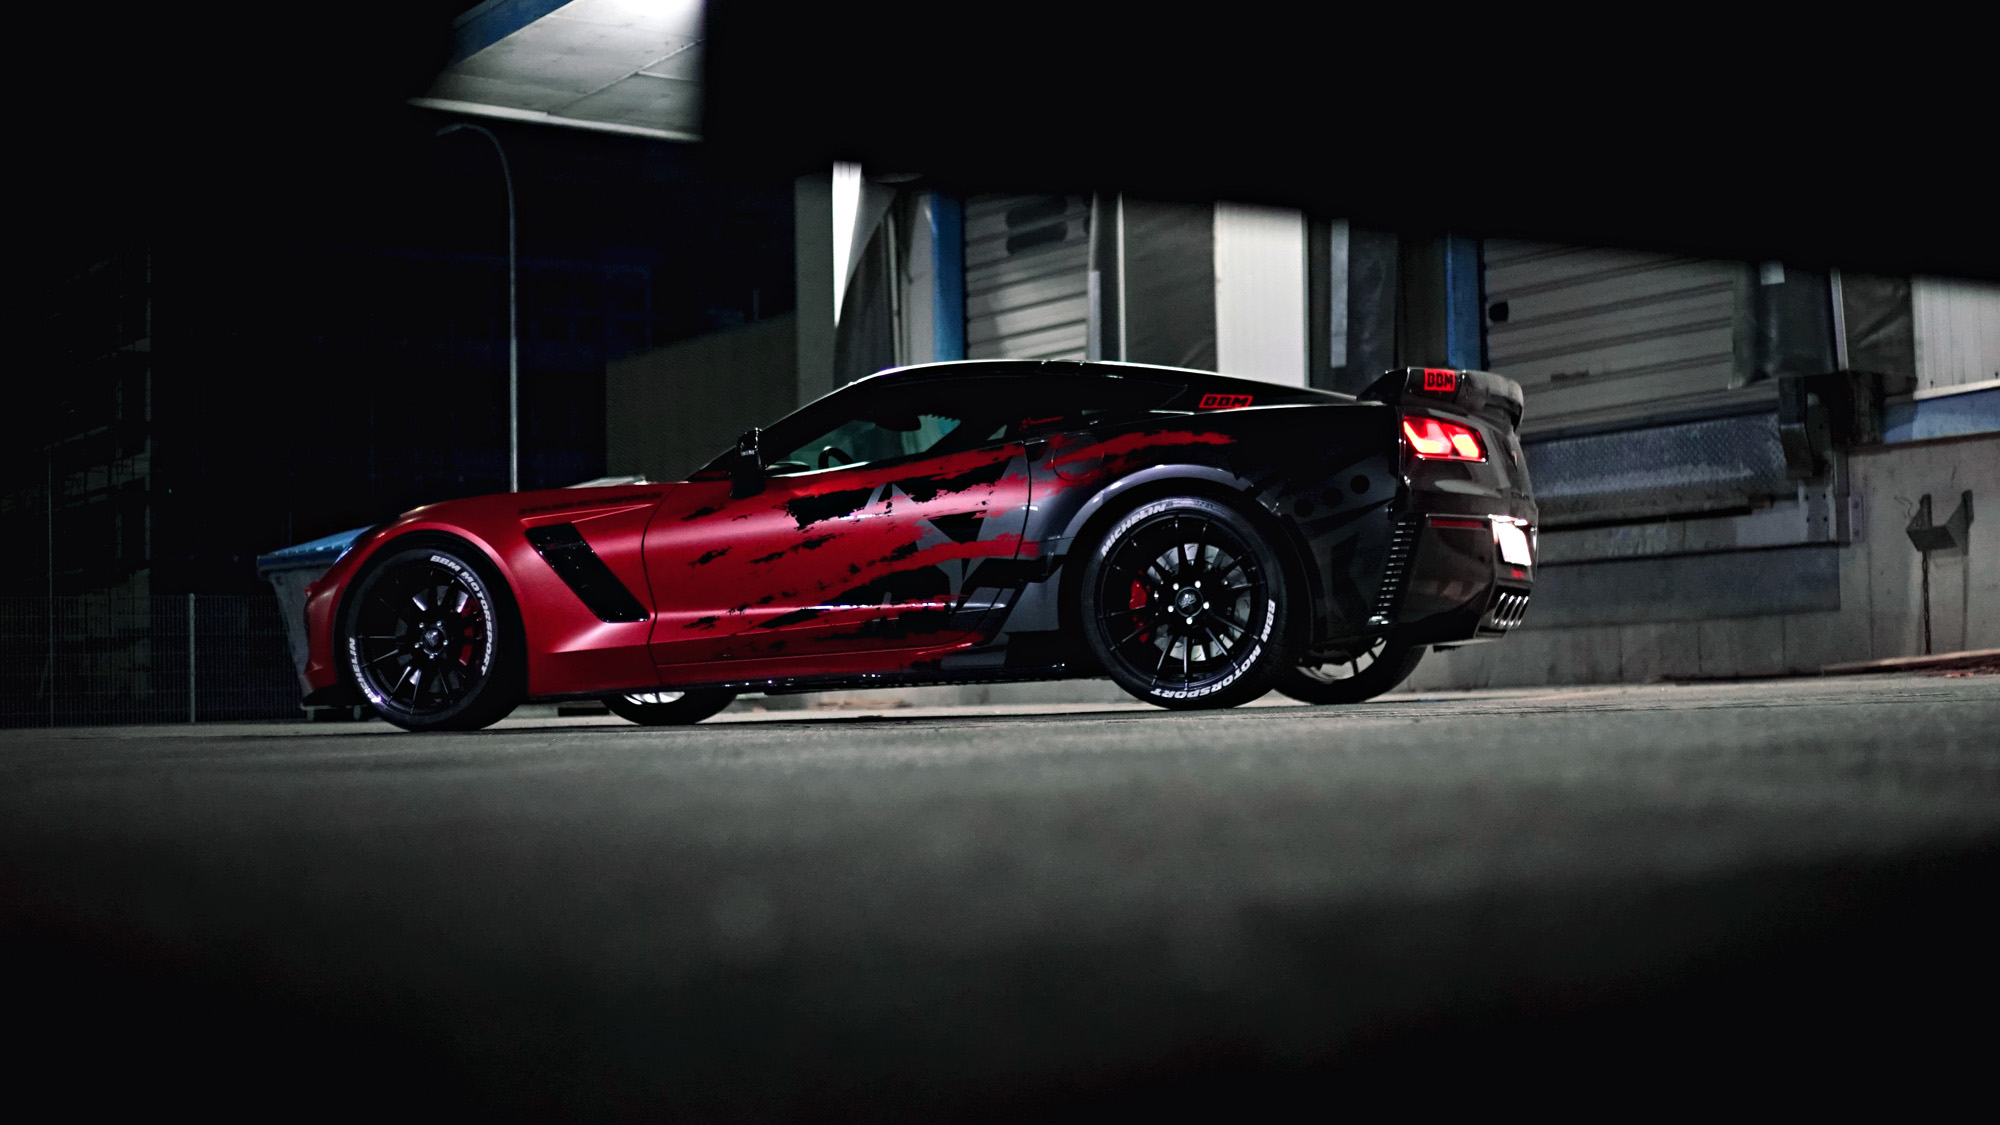 corvette c7 z06 tuning der eyecatcher von bbm motorsport. Black Bedroom Furniture Sets. Home Design Ideas